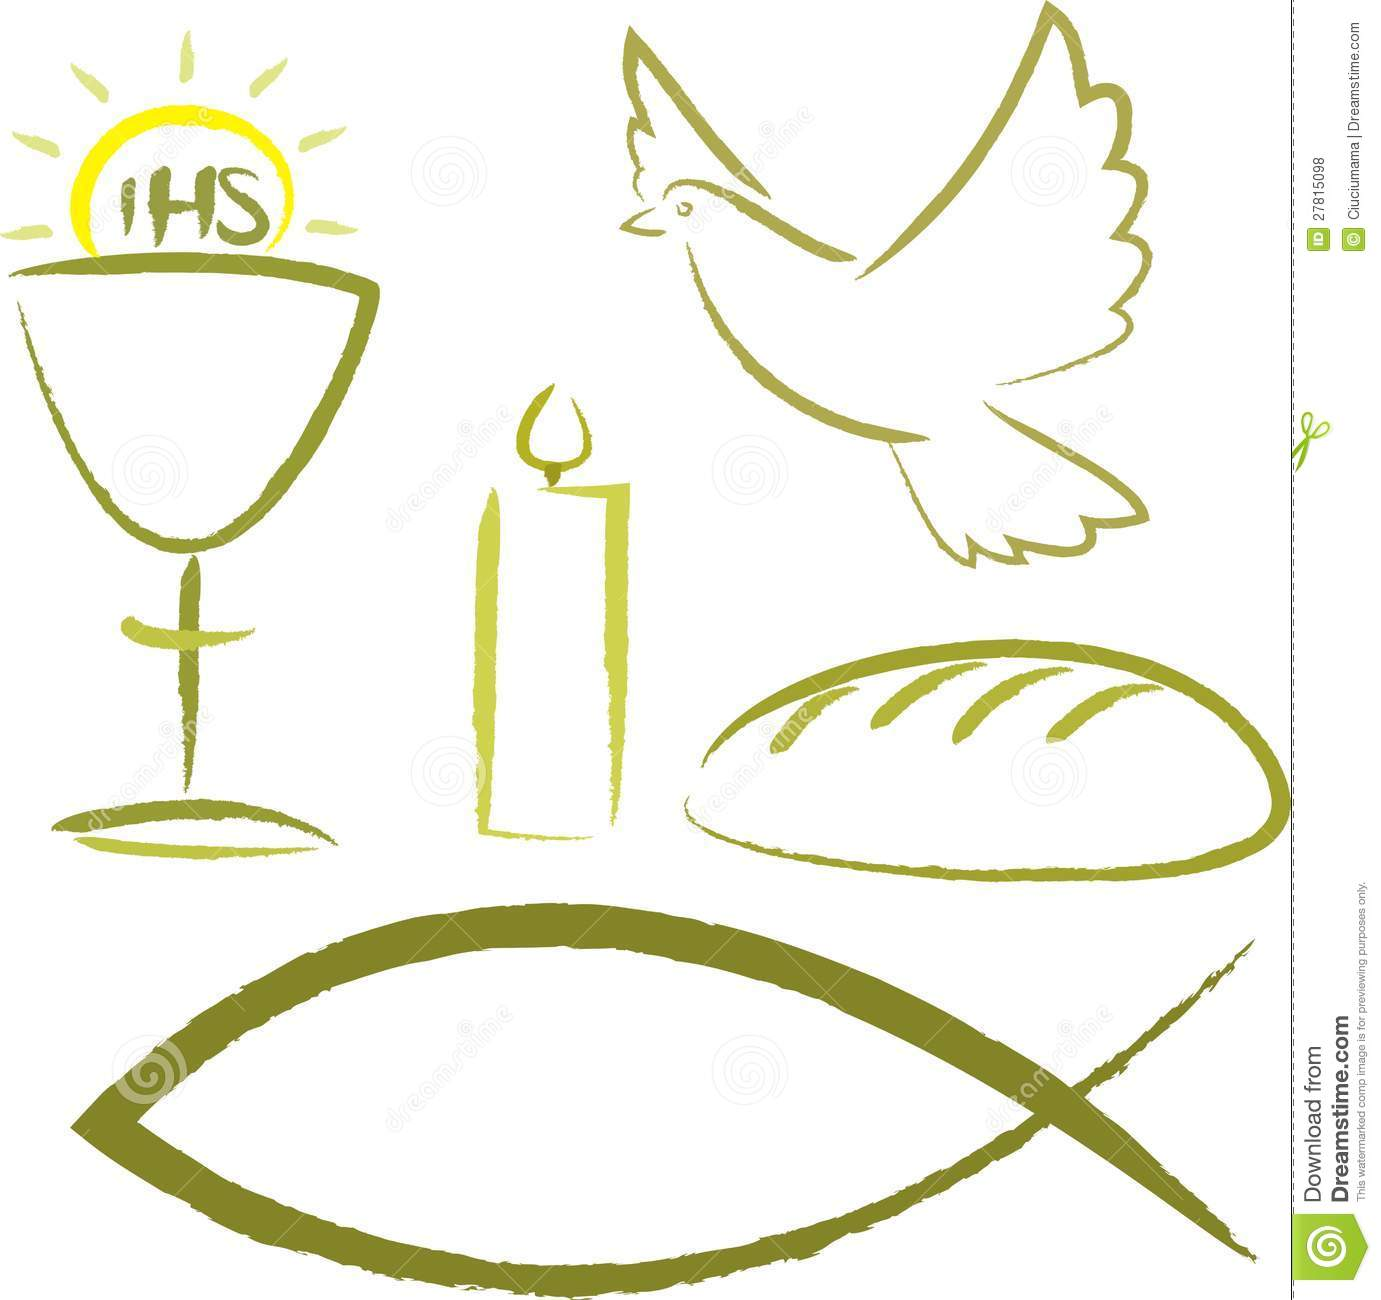 Symbols Clip Art Cachedlast Supper Catholic Religious Symbols